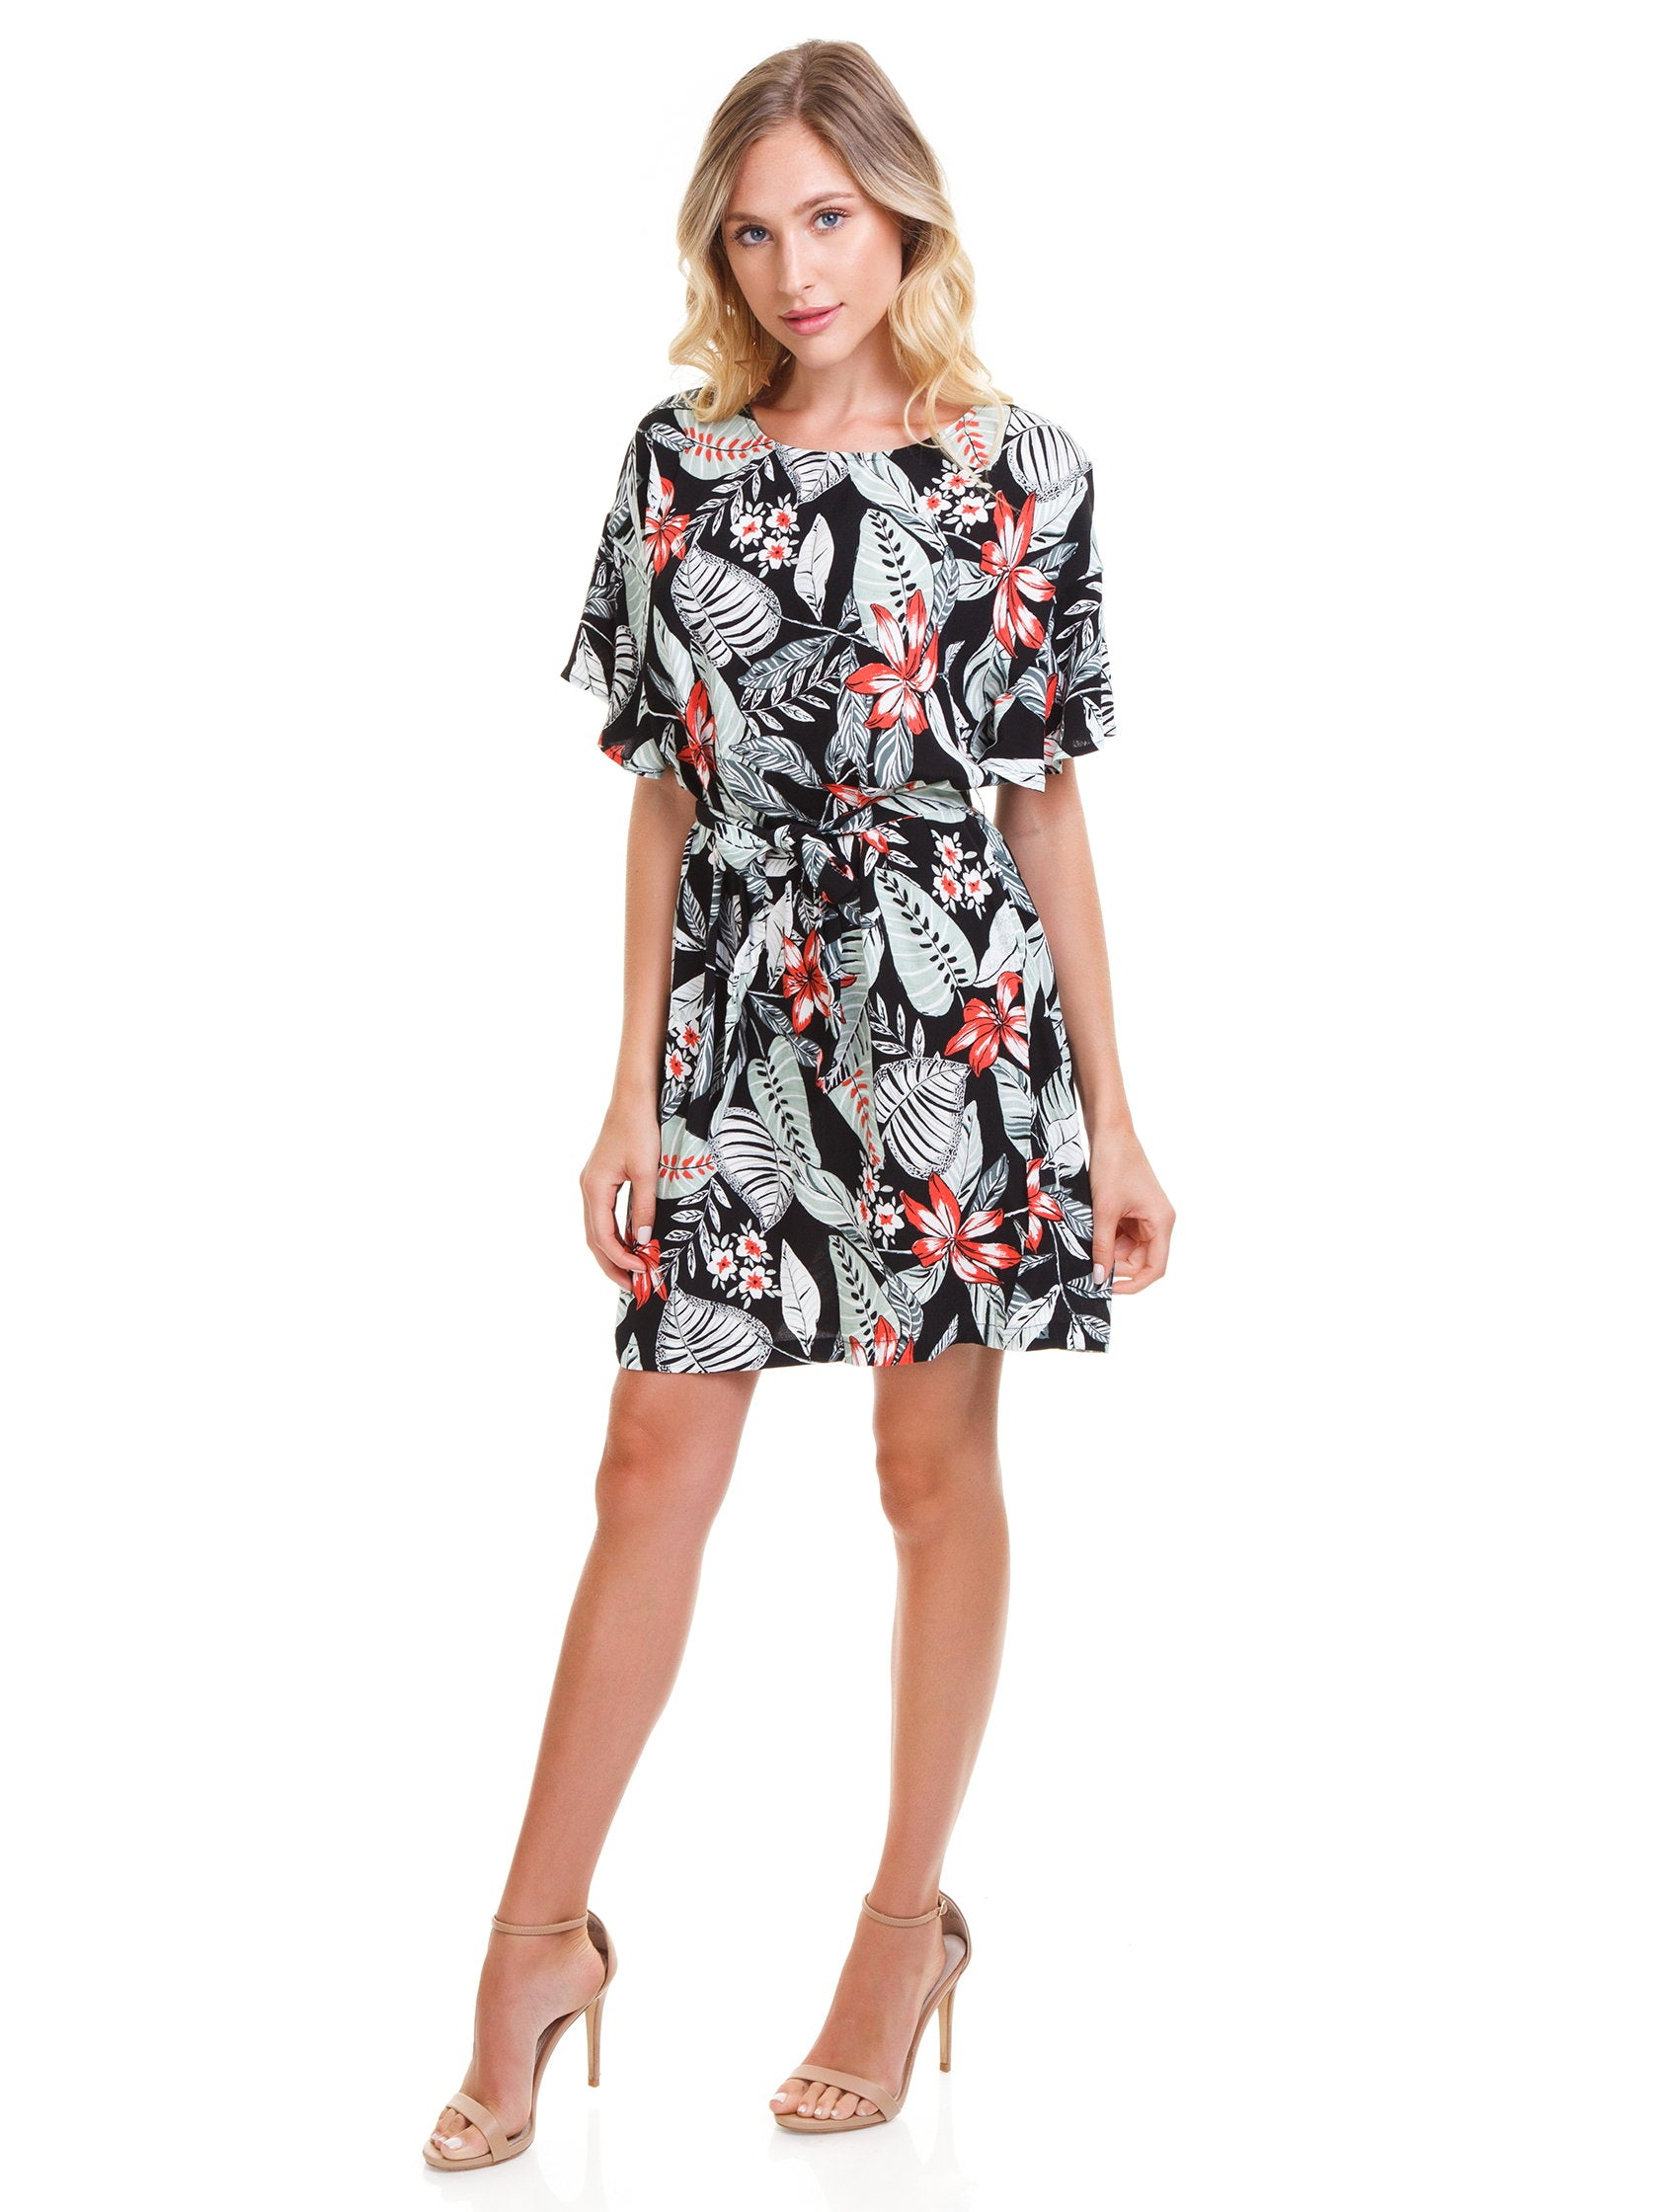 Women outfit in a dress rental from MINKPINK called Aloha Cove Waist Tie Dress